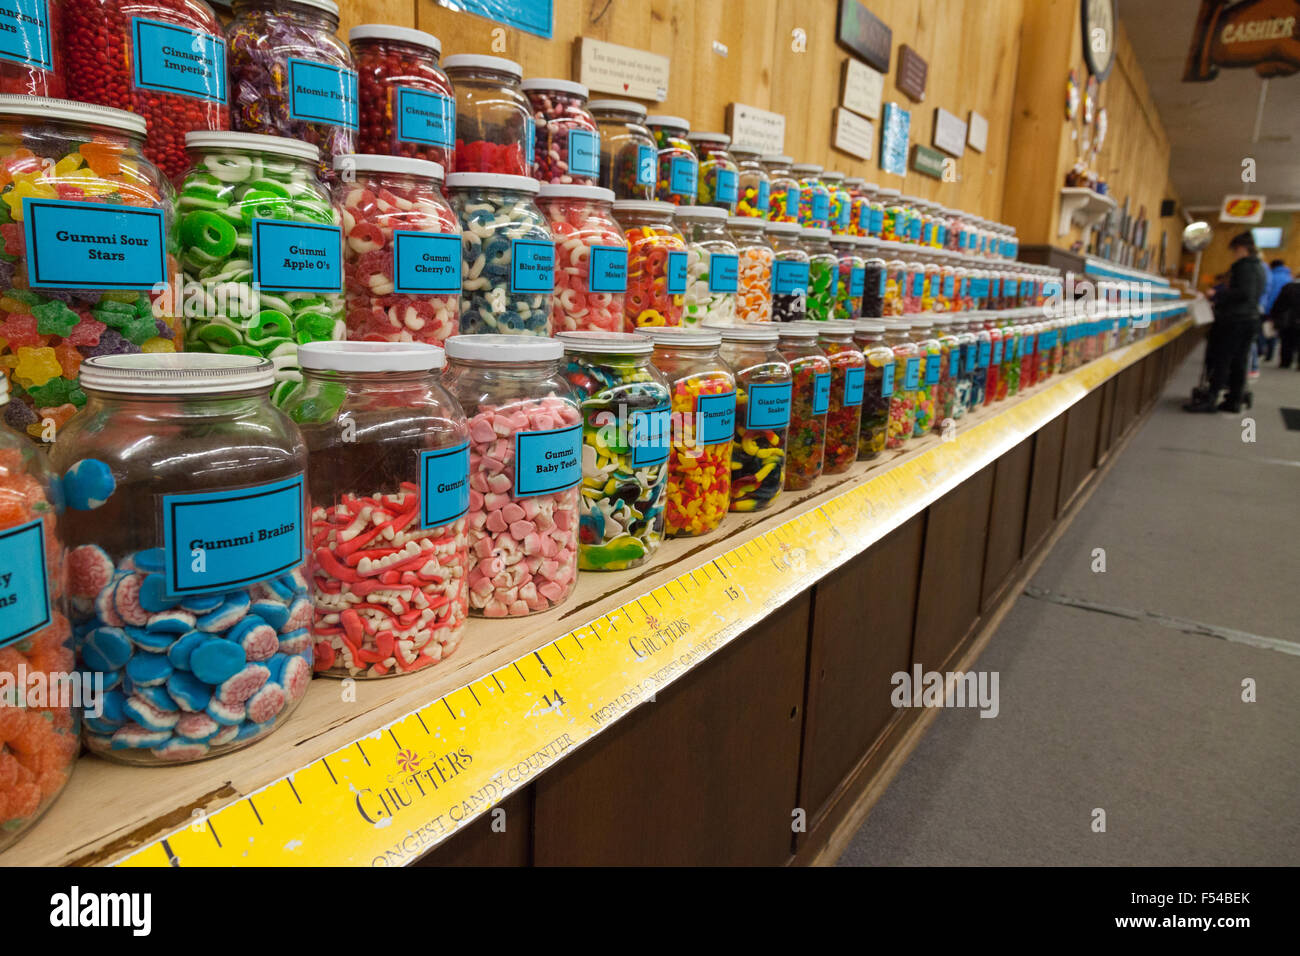 The Worlds Longest Candy Counter, in Chutters Candy Store, Littleton, New Hampshire USA - Stock Image